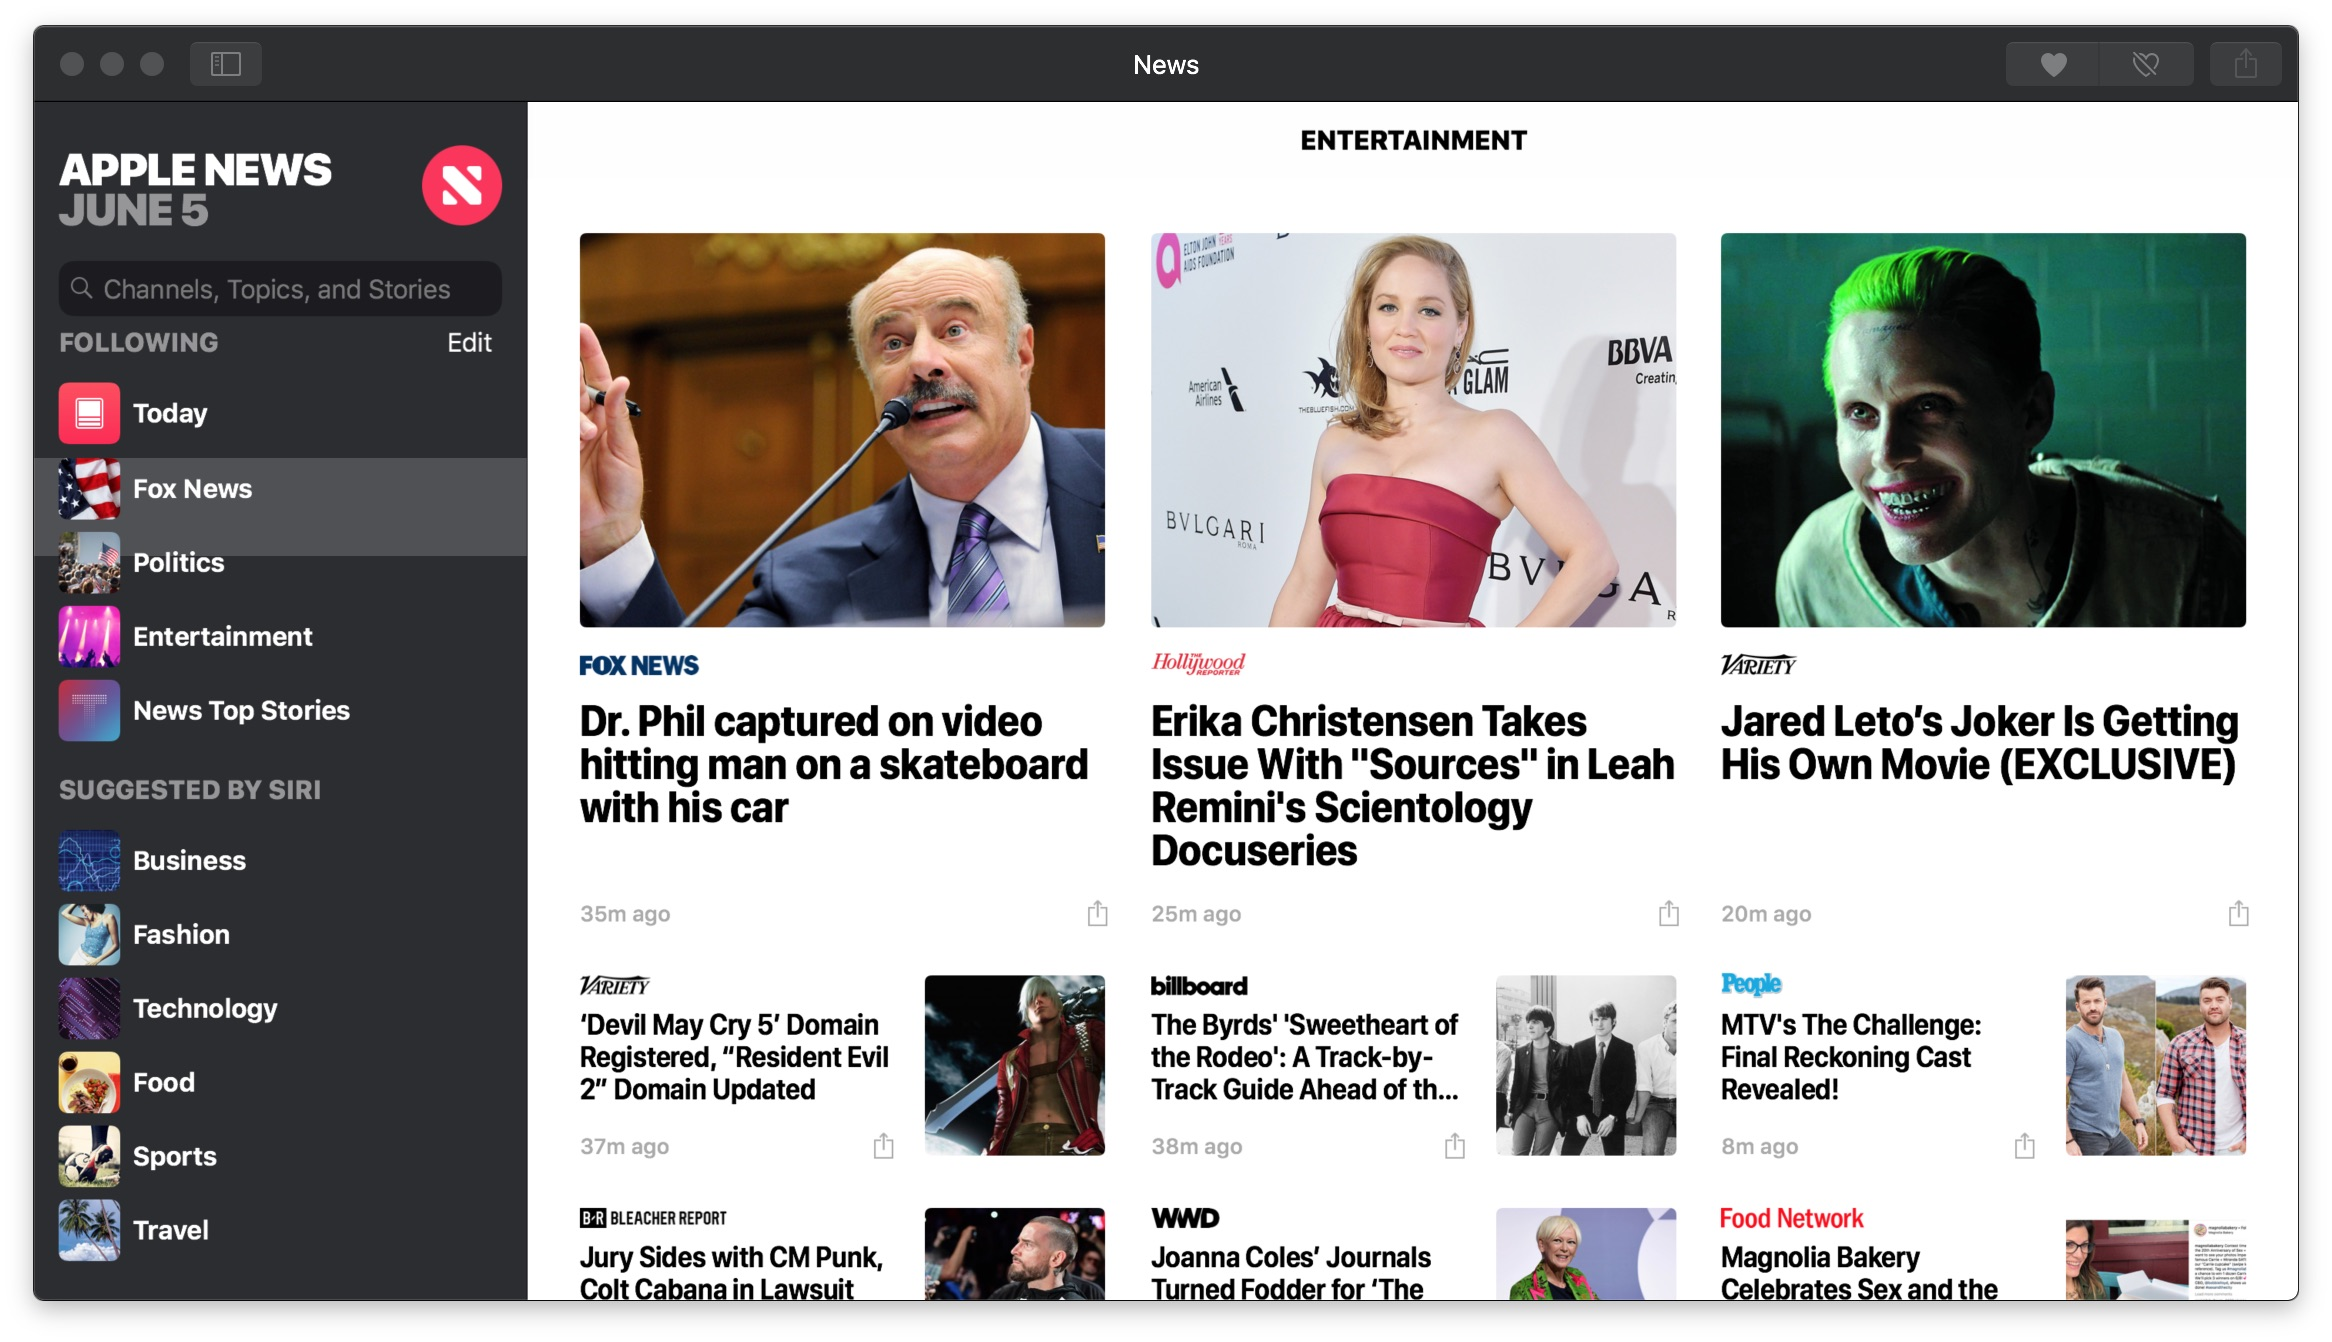 News Entertainment section